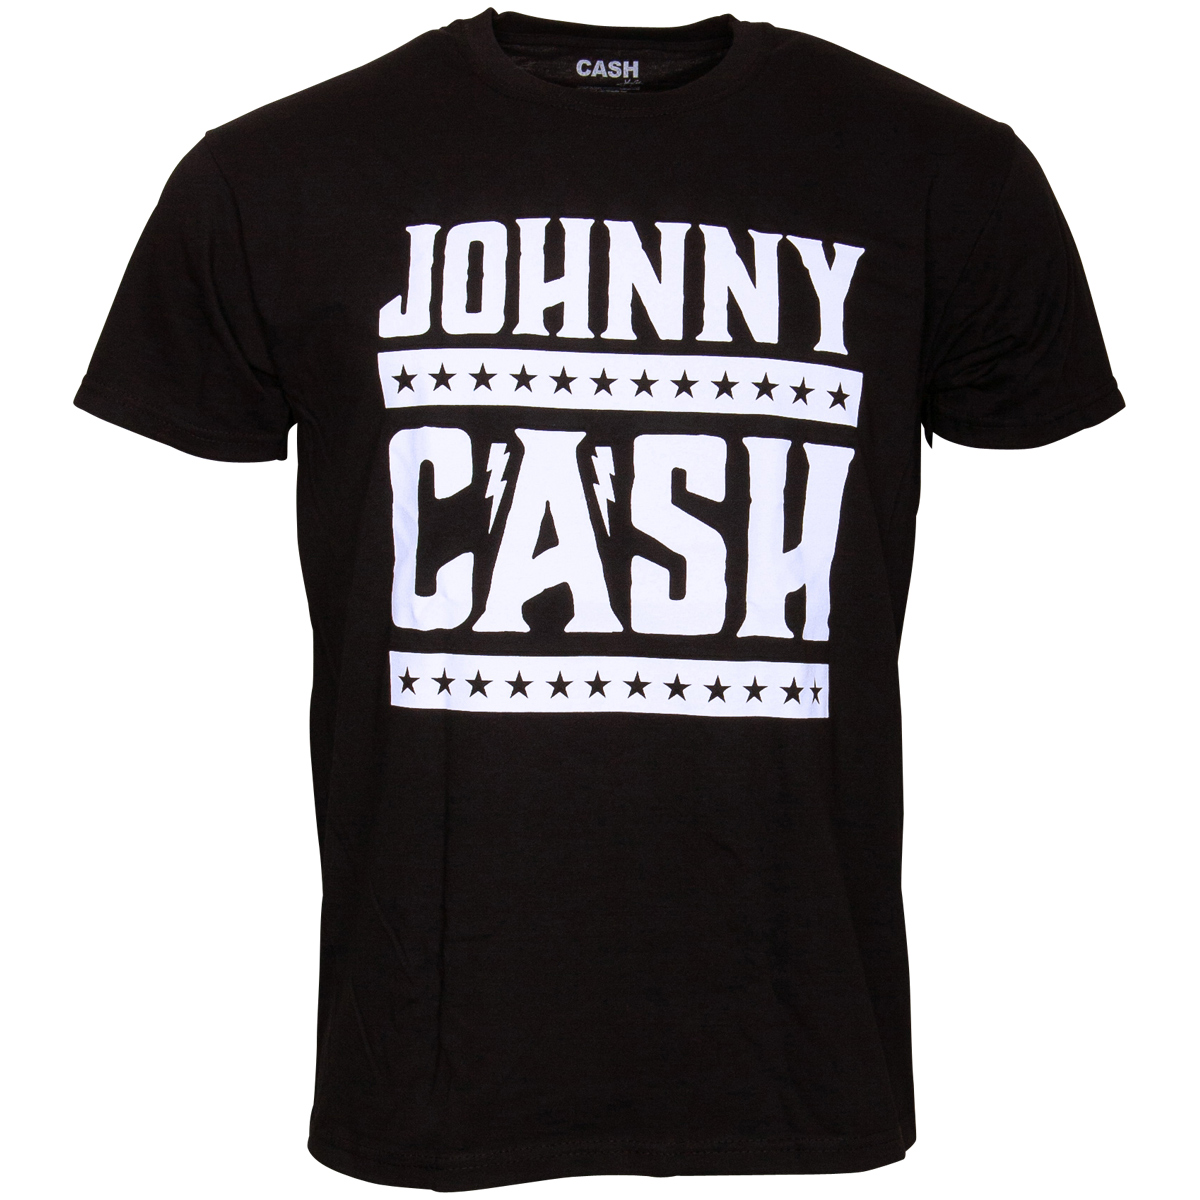 Johnny Cash - T-Shirt Simple Logo - schwarz